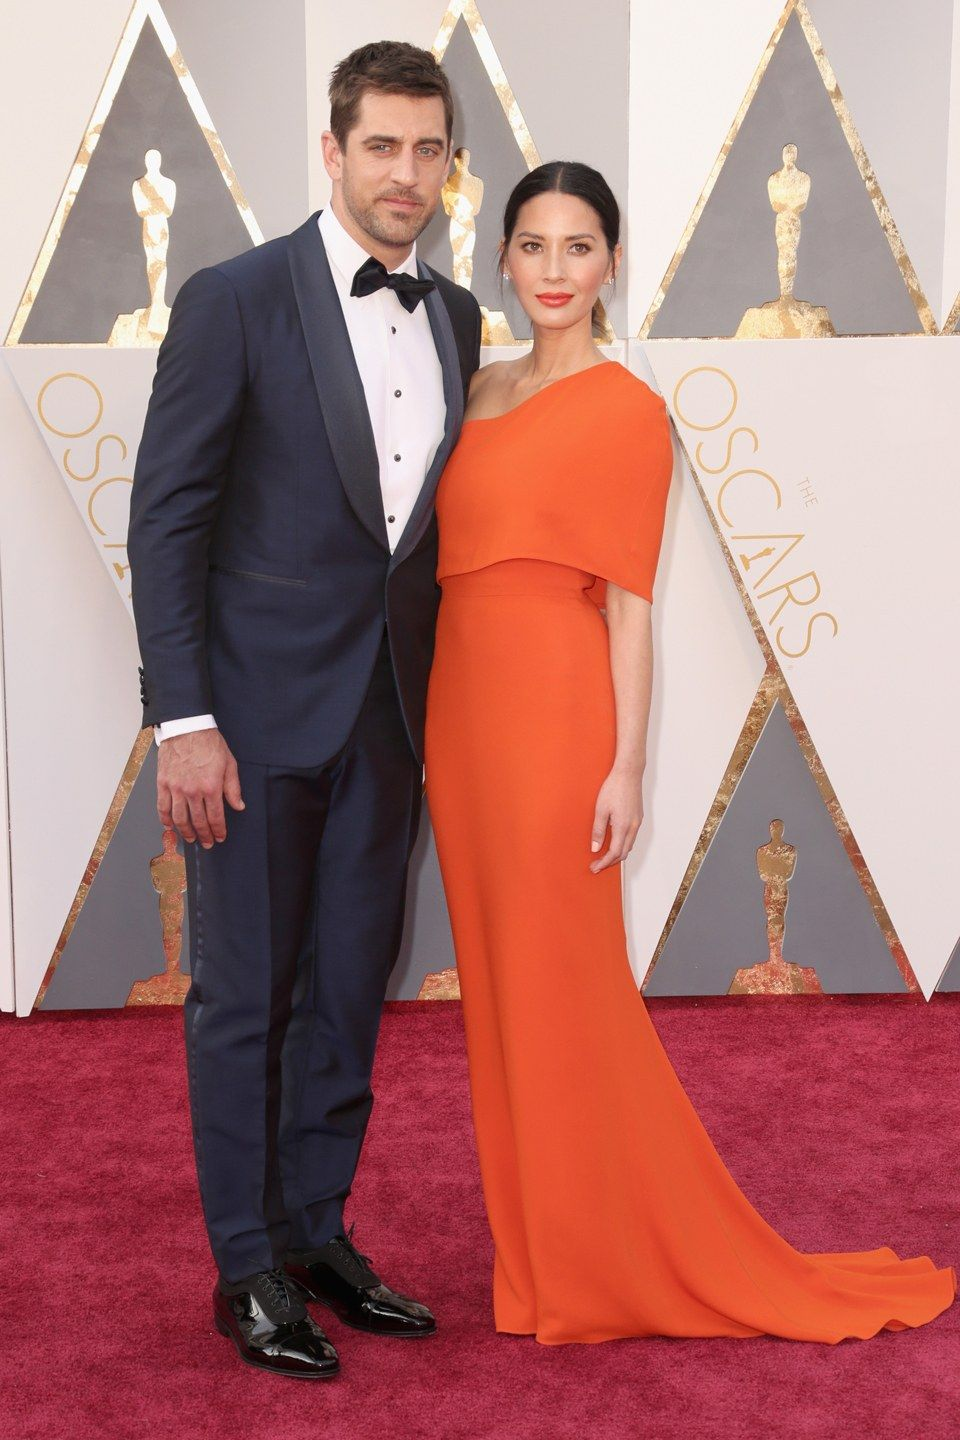 Oscars 2016 Red Carpet Fashion Looks From Hollywood S Biggest Night Celebrity Dresses Nice Dresses Red Carpet Oscars